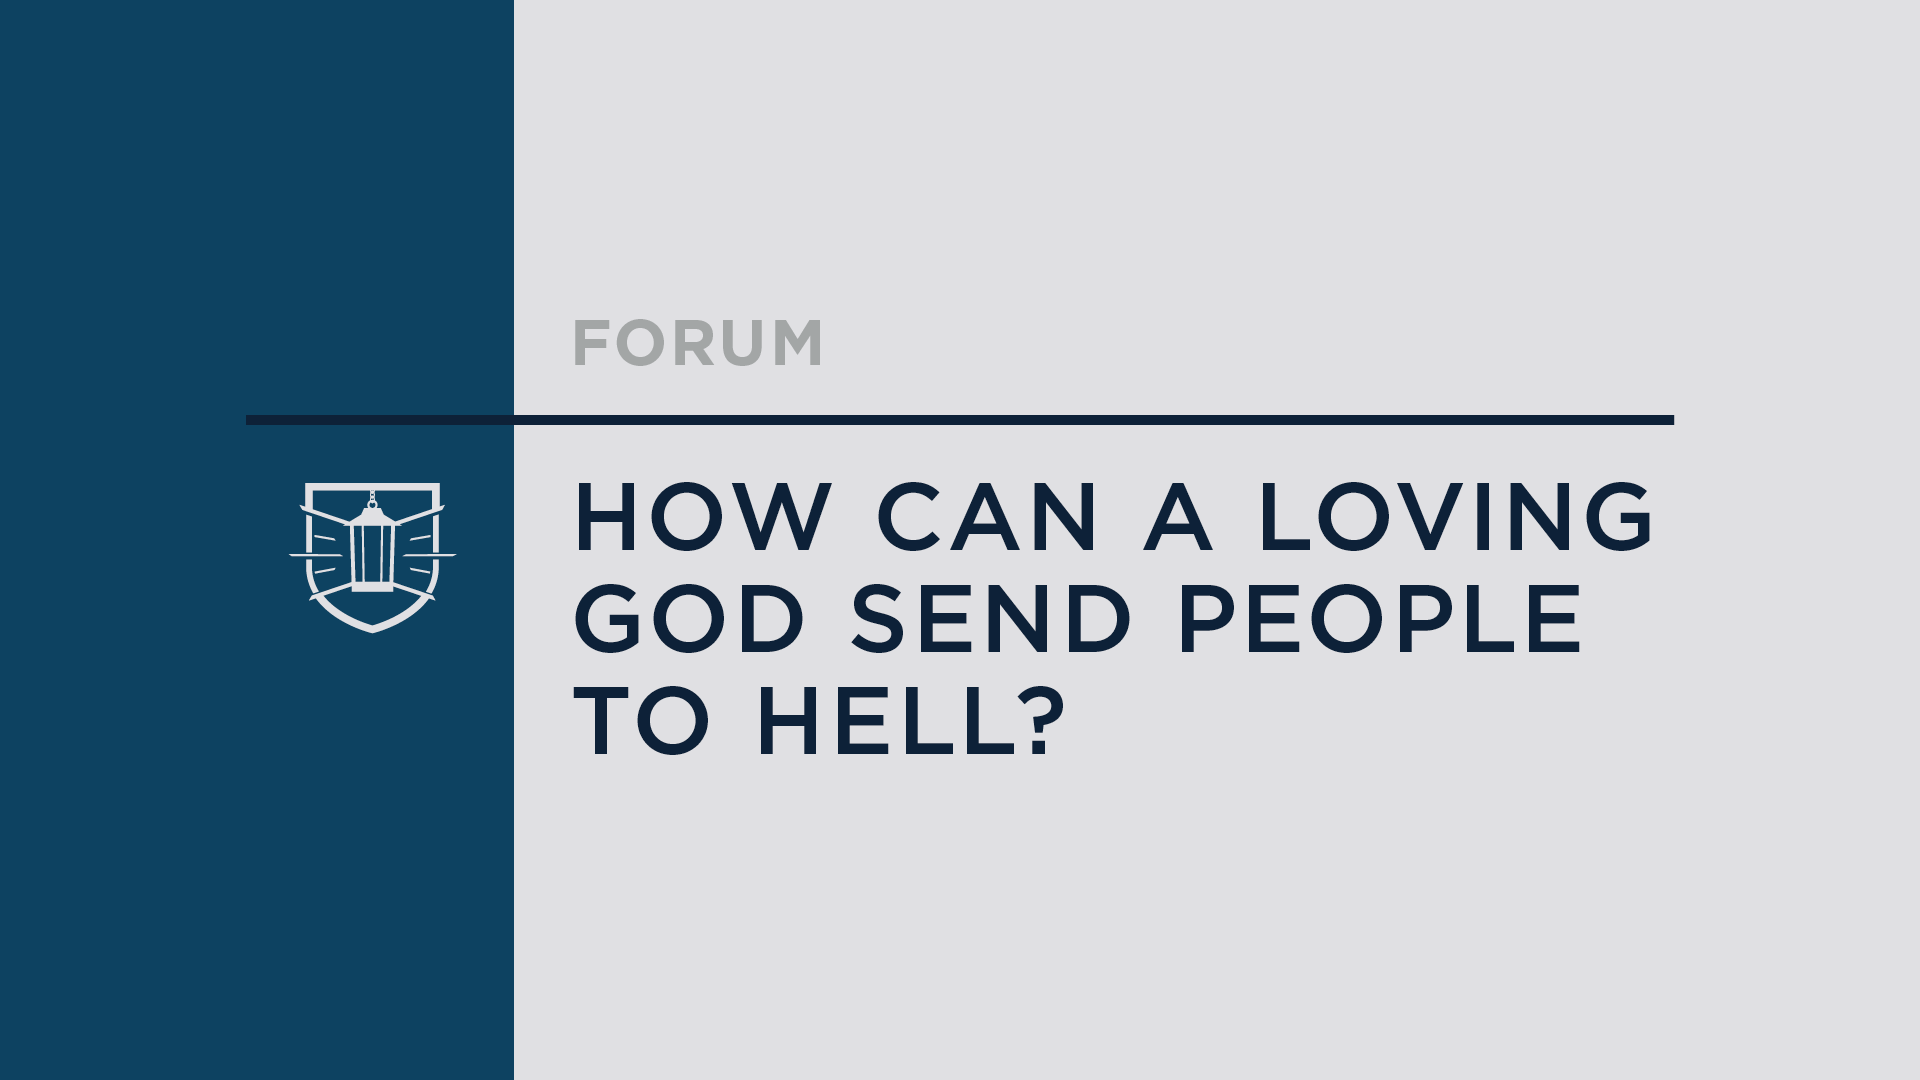 How Can a Loving God Send People to Hell?